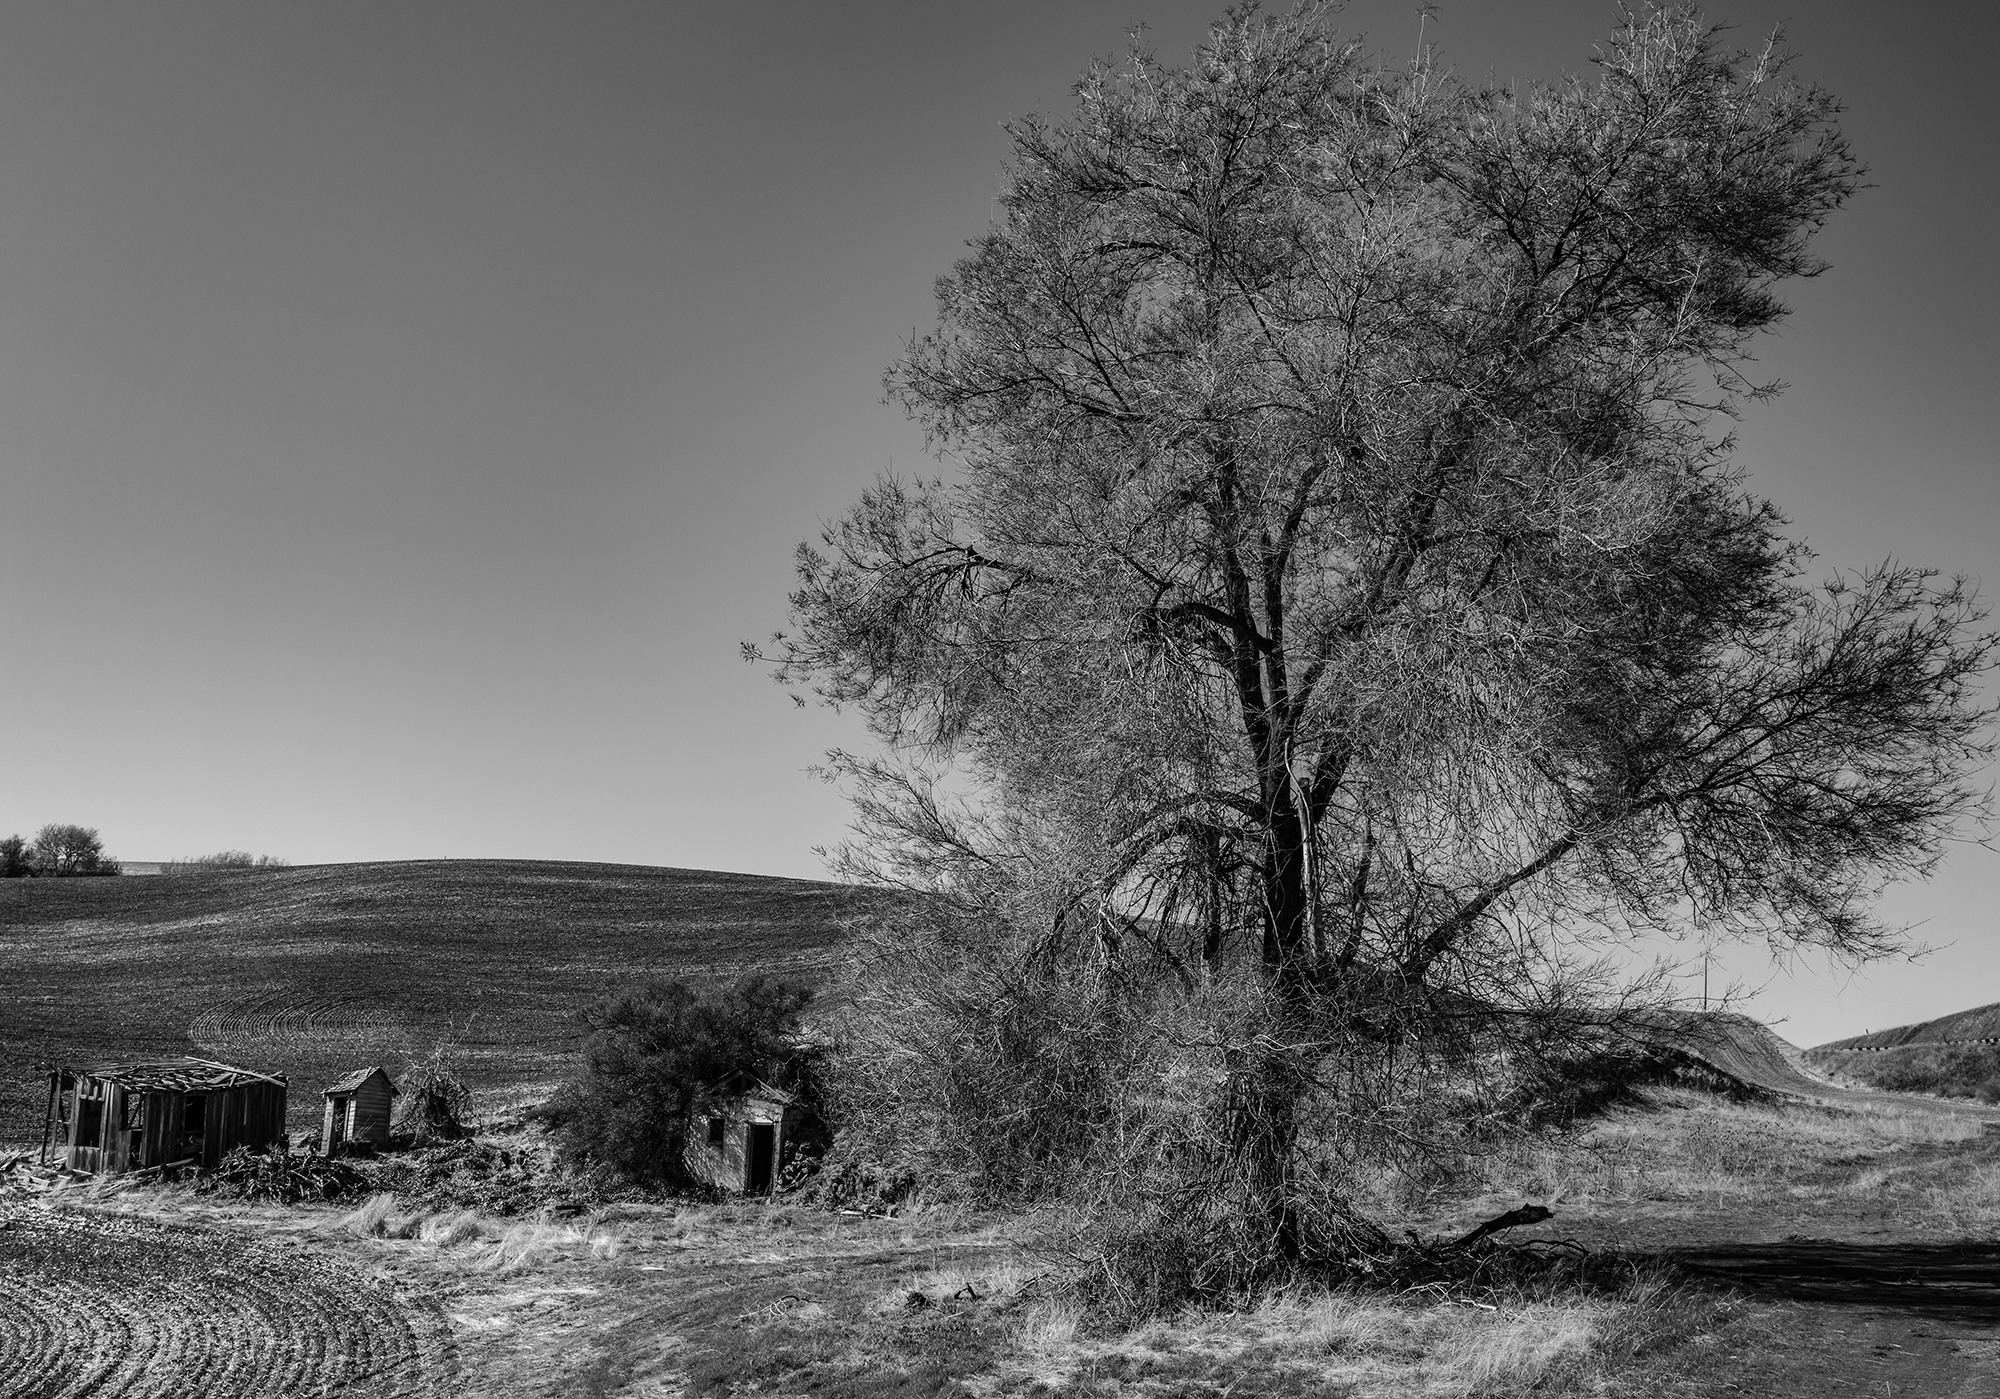 Remnants of an old homestead speak to a hardscrabble lifestyle in years past.